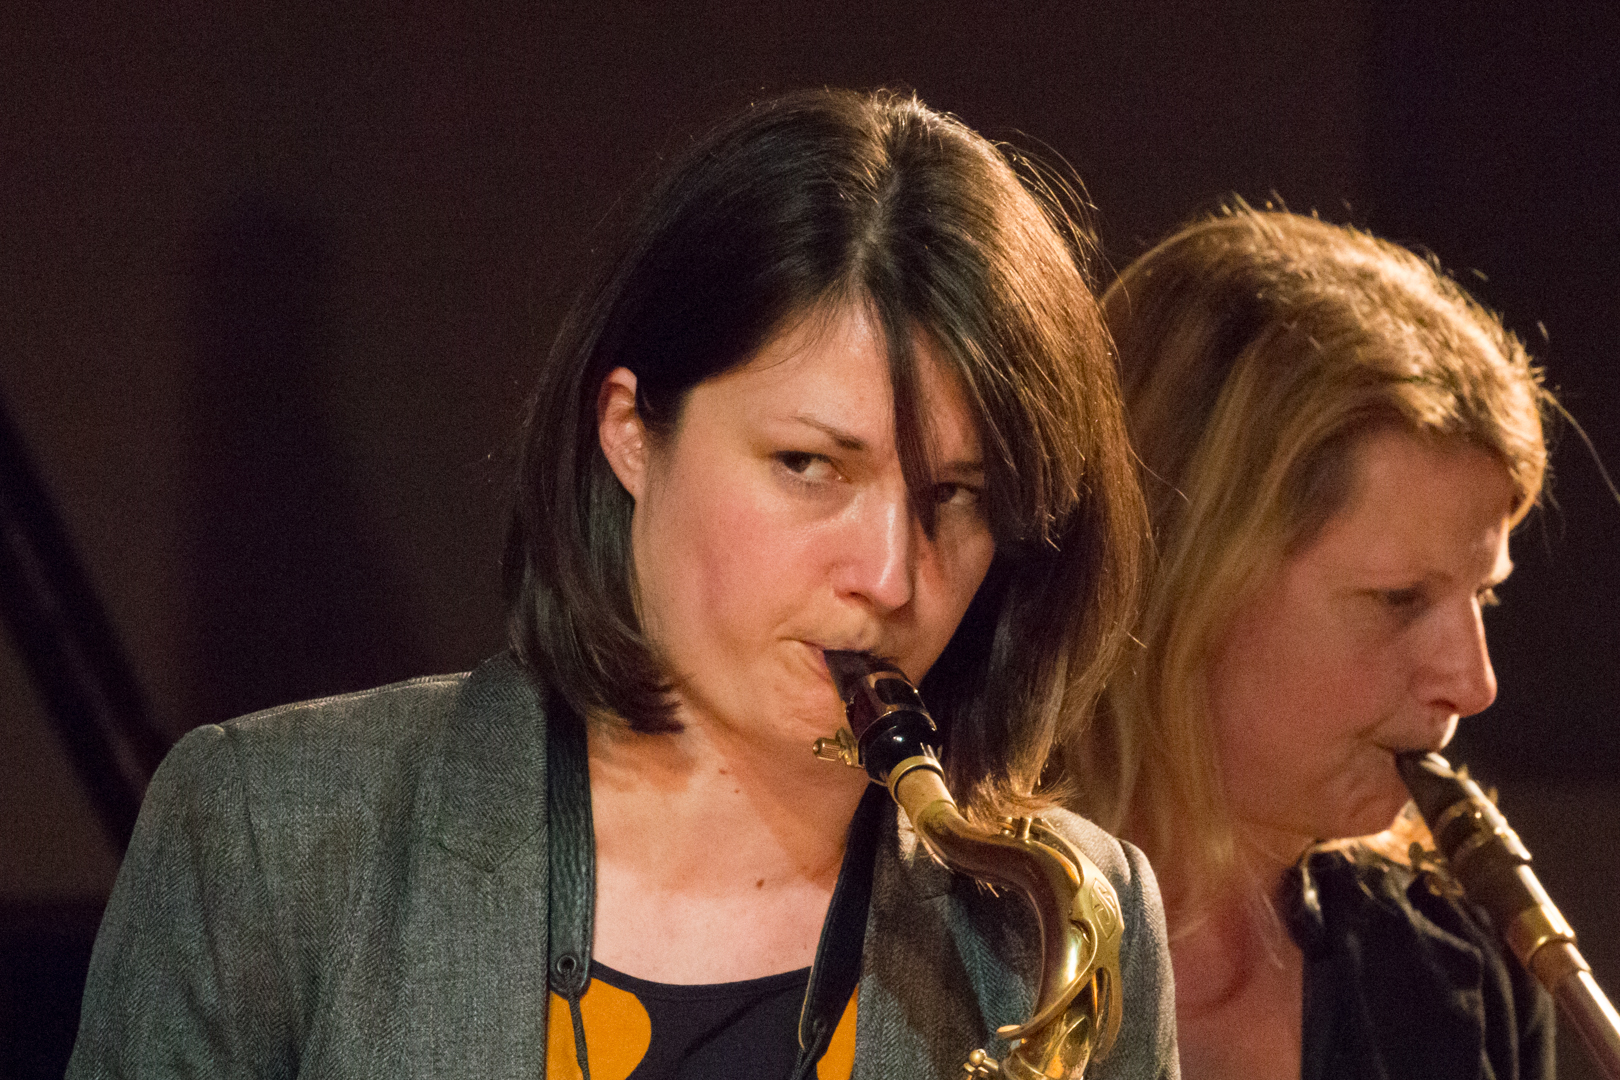 Trish Clowes and Karen Sharp performing in the Nikki Iles All Star Septet at Fleet Jazz on 19th Feb 2019.